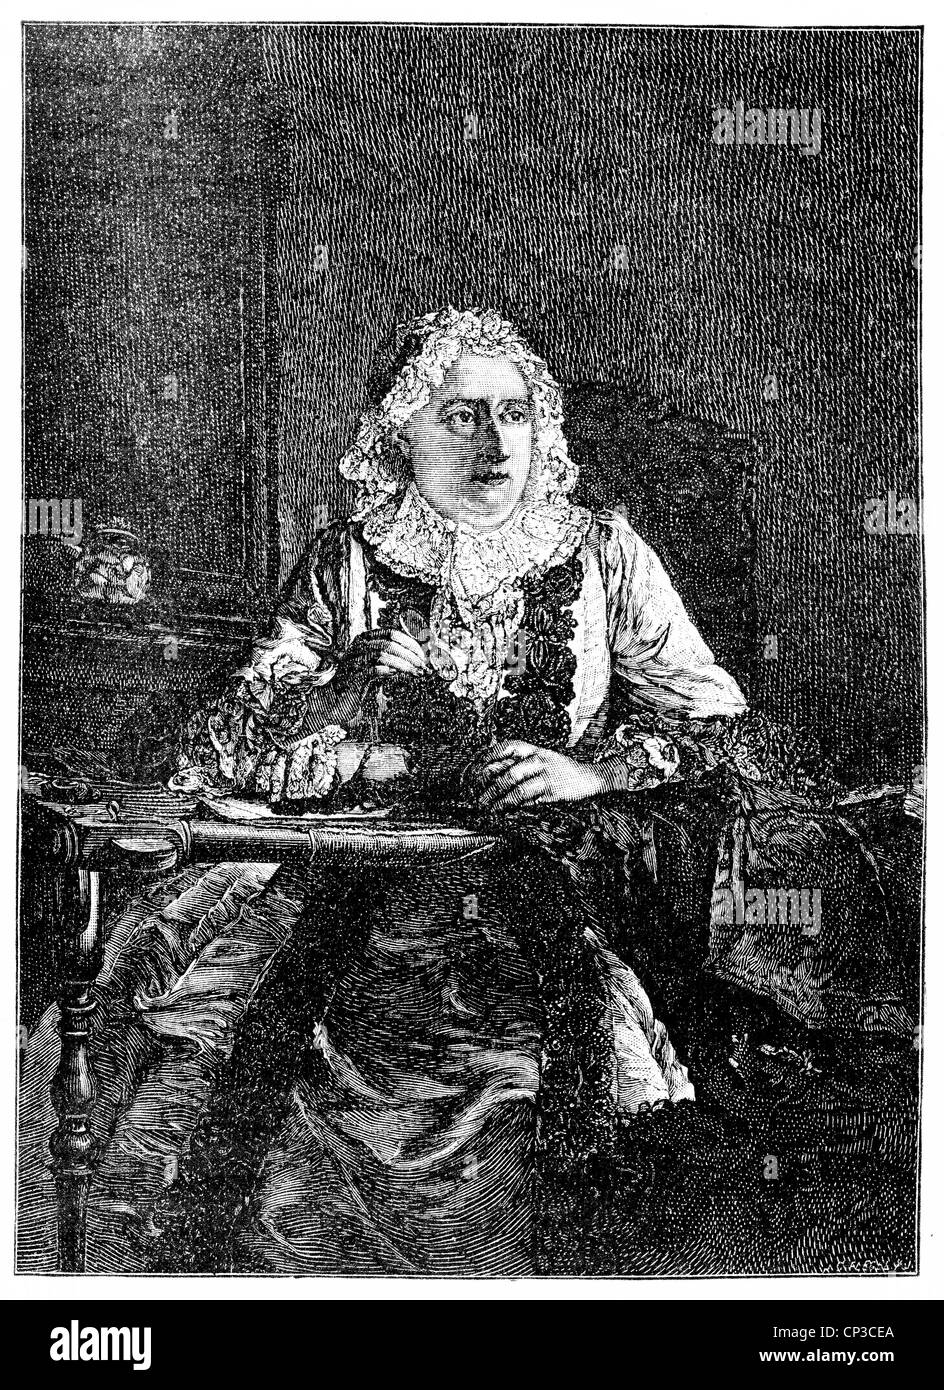 Madame Marie Thérèse Geoffrin, nee Rodet, 1699 - 1777, a French writer and Enlightenment Salonnière, - Stock Image